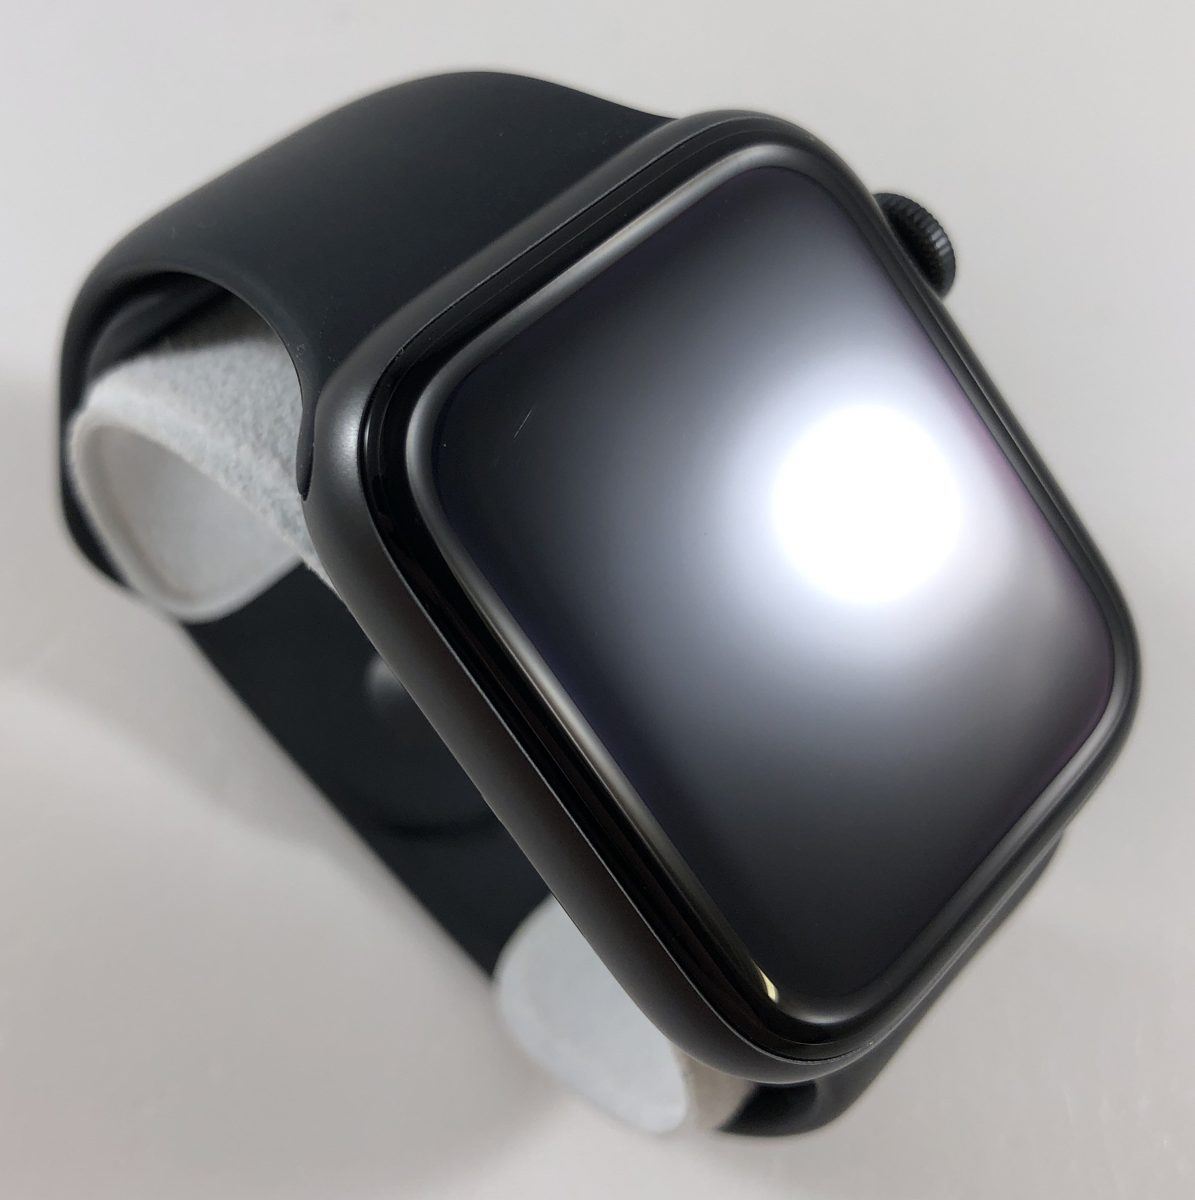 Watch Series 5 Aluminum Cellular (44mm), Space Gray, image 2